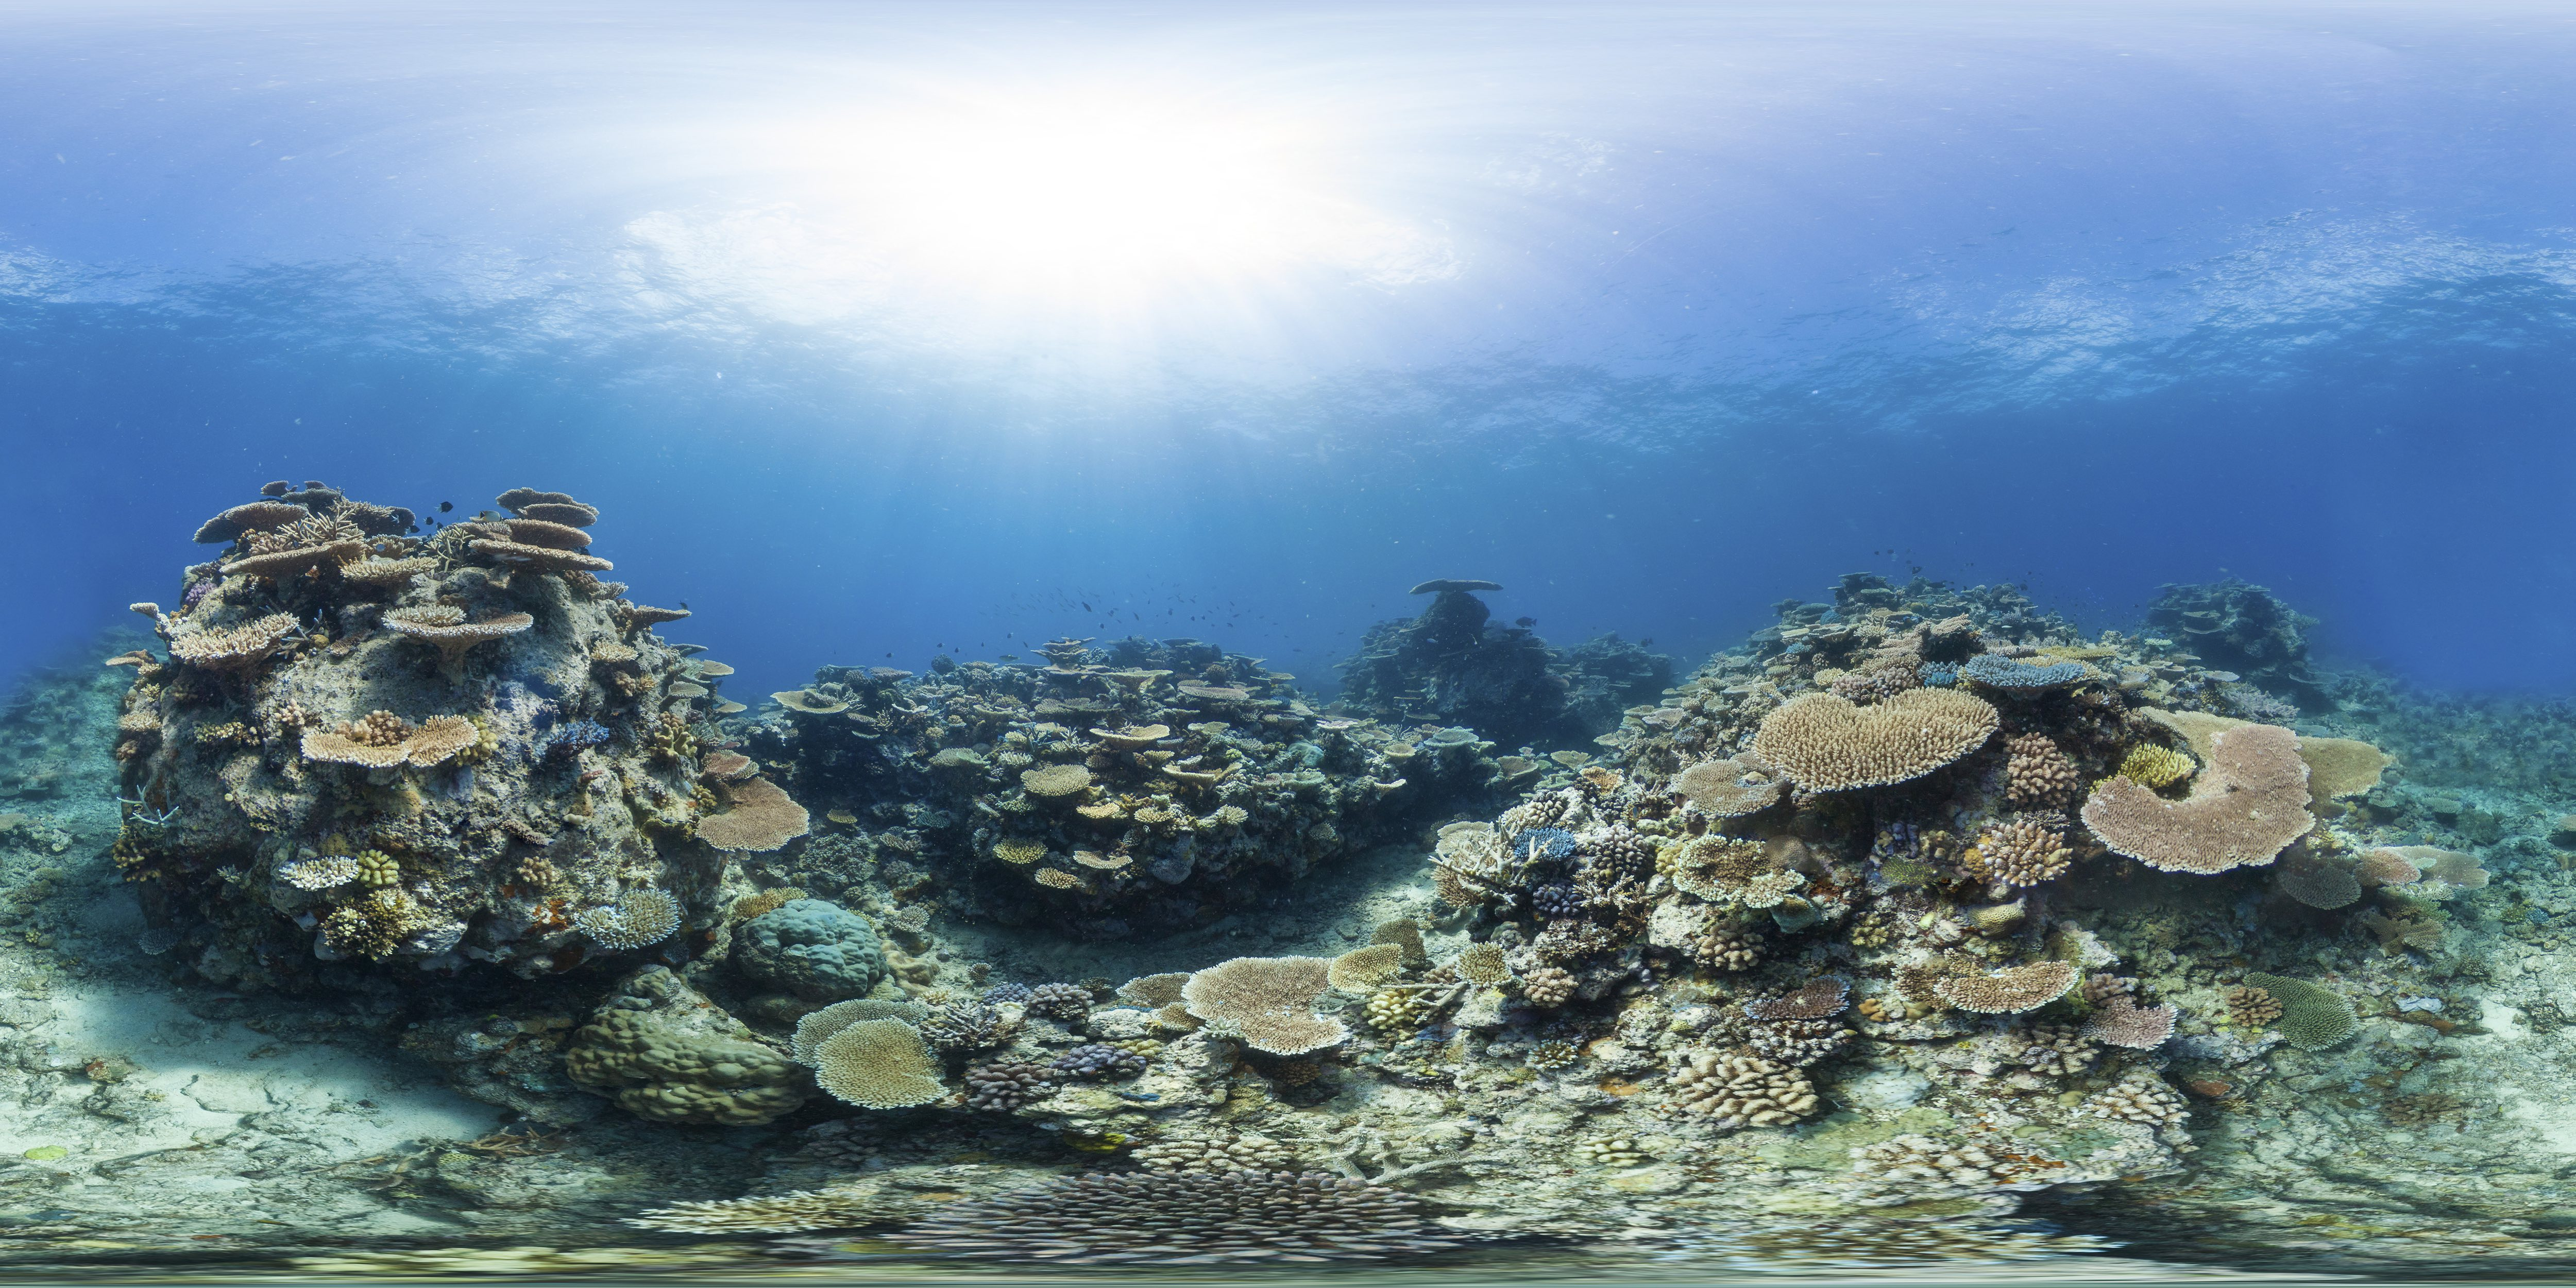 Healthy coral on Wilson Reef in the Great Barrier Reef marine park. Photo: XL Catlin Seaview Survey/Underwater Earth